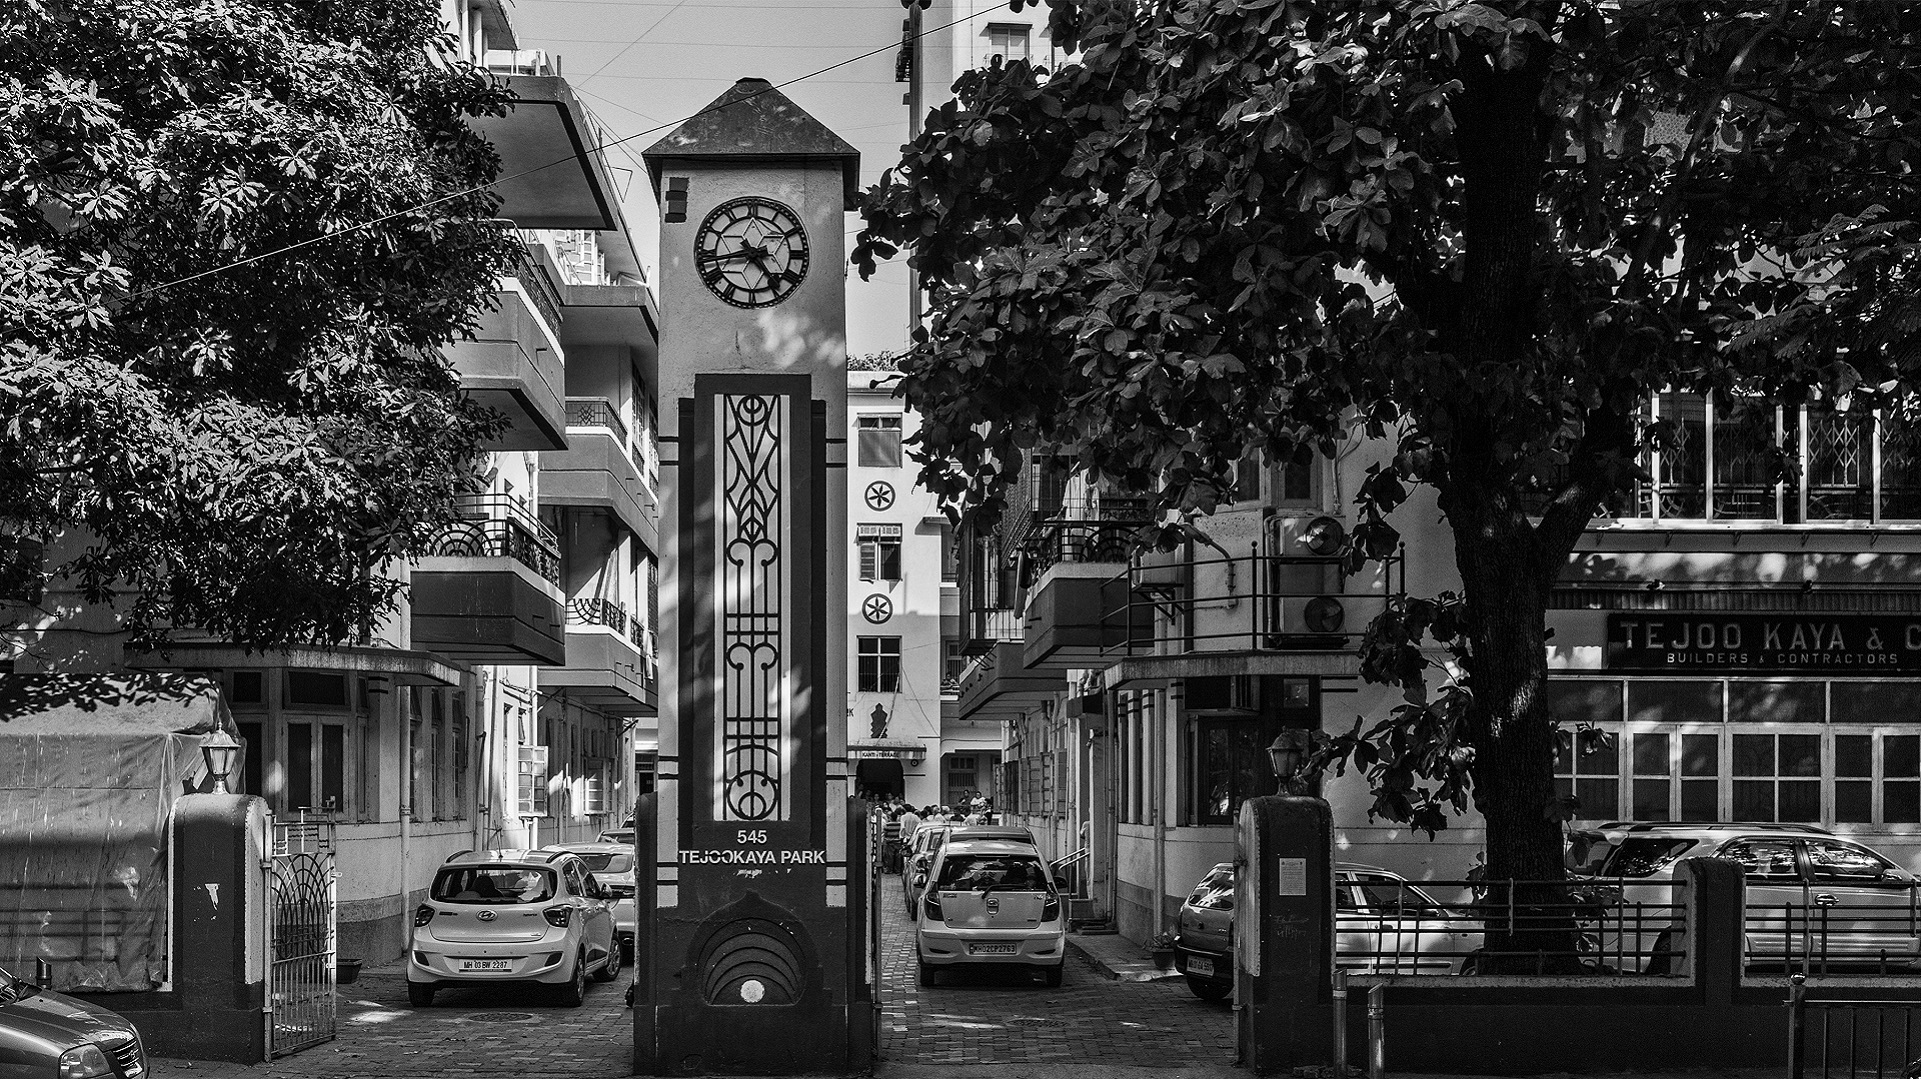 Public clocks of Bombay: In documenting the city's timekeepers, musings on the nature of time